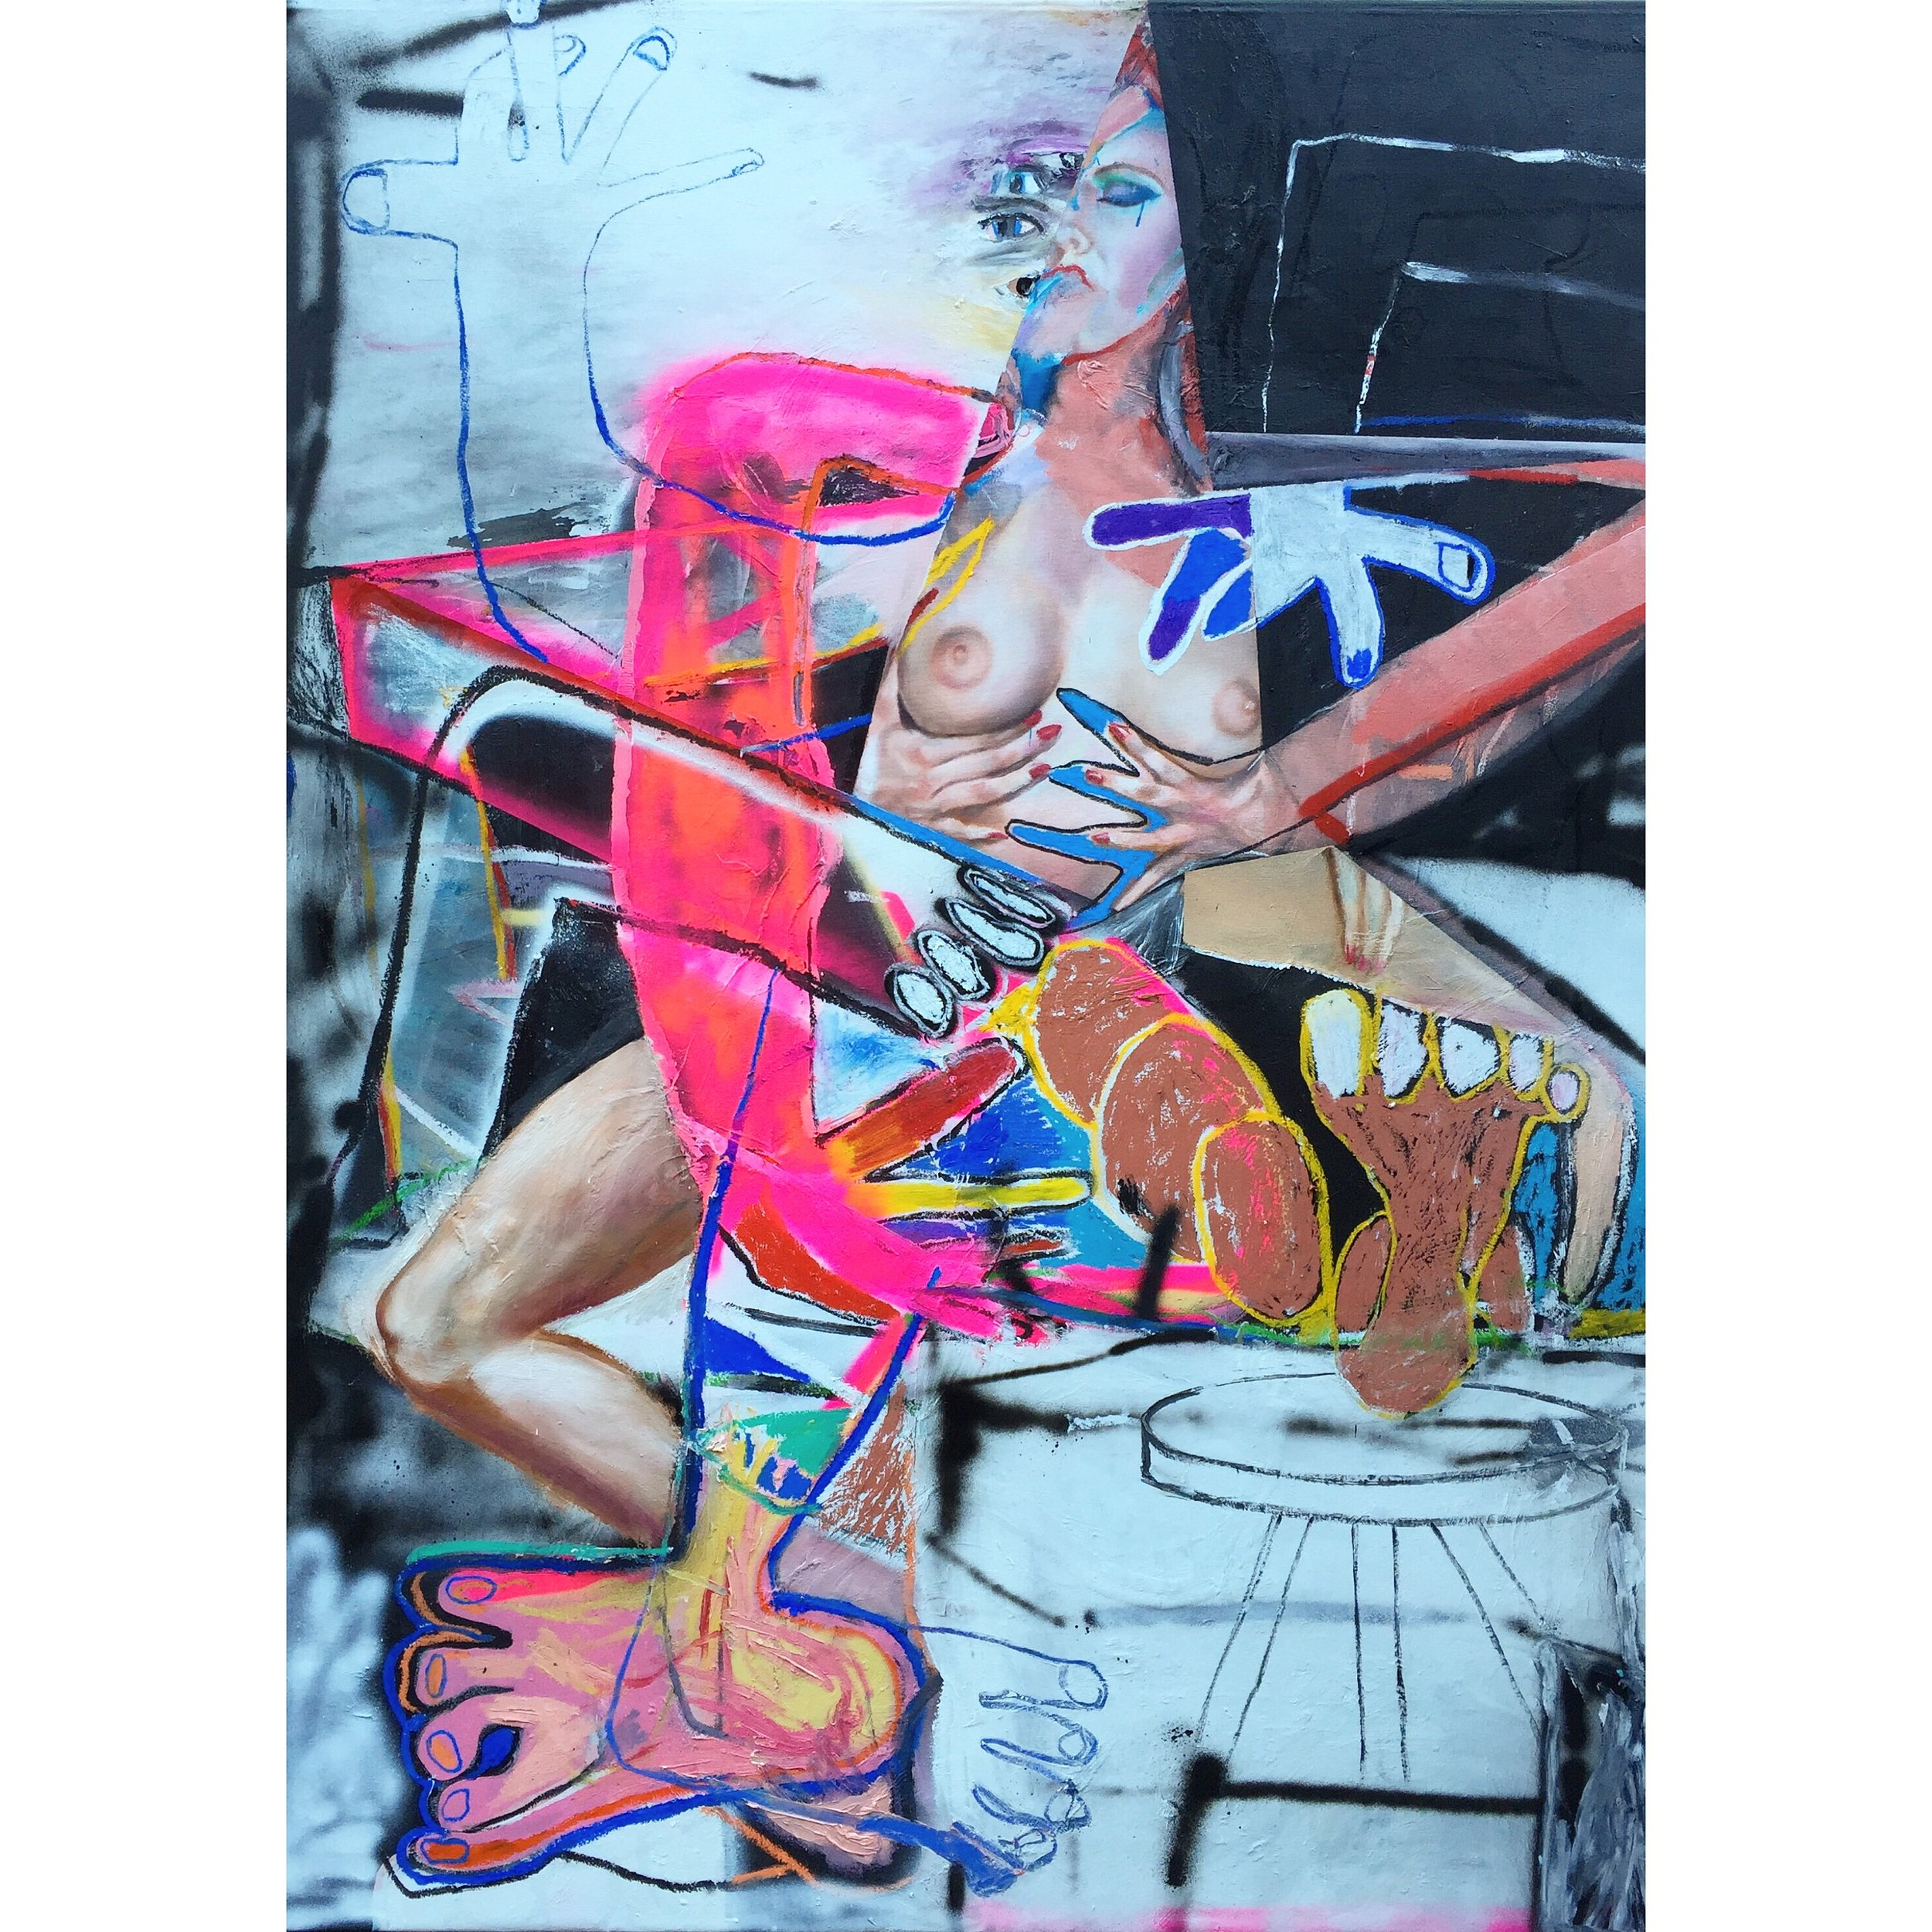 Oil, Oil Stick, Acrylic, and Spray Paint on Canvas  71 x 51 in  180 x 130 cm